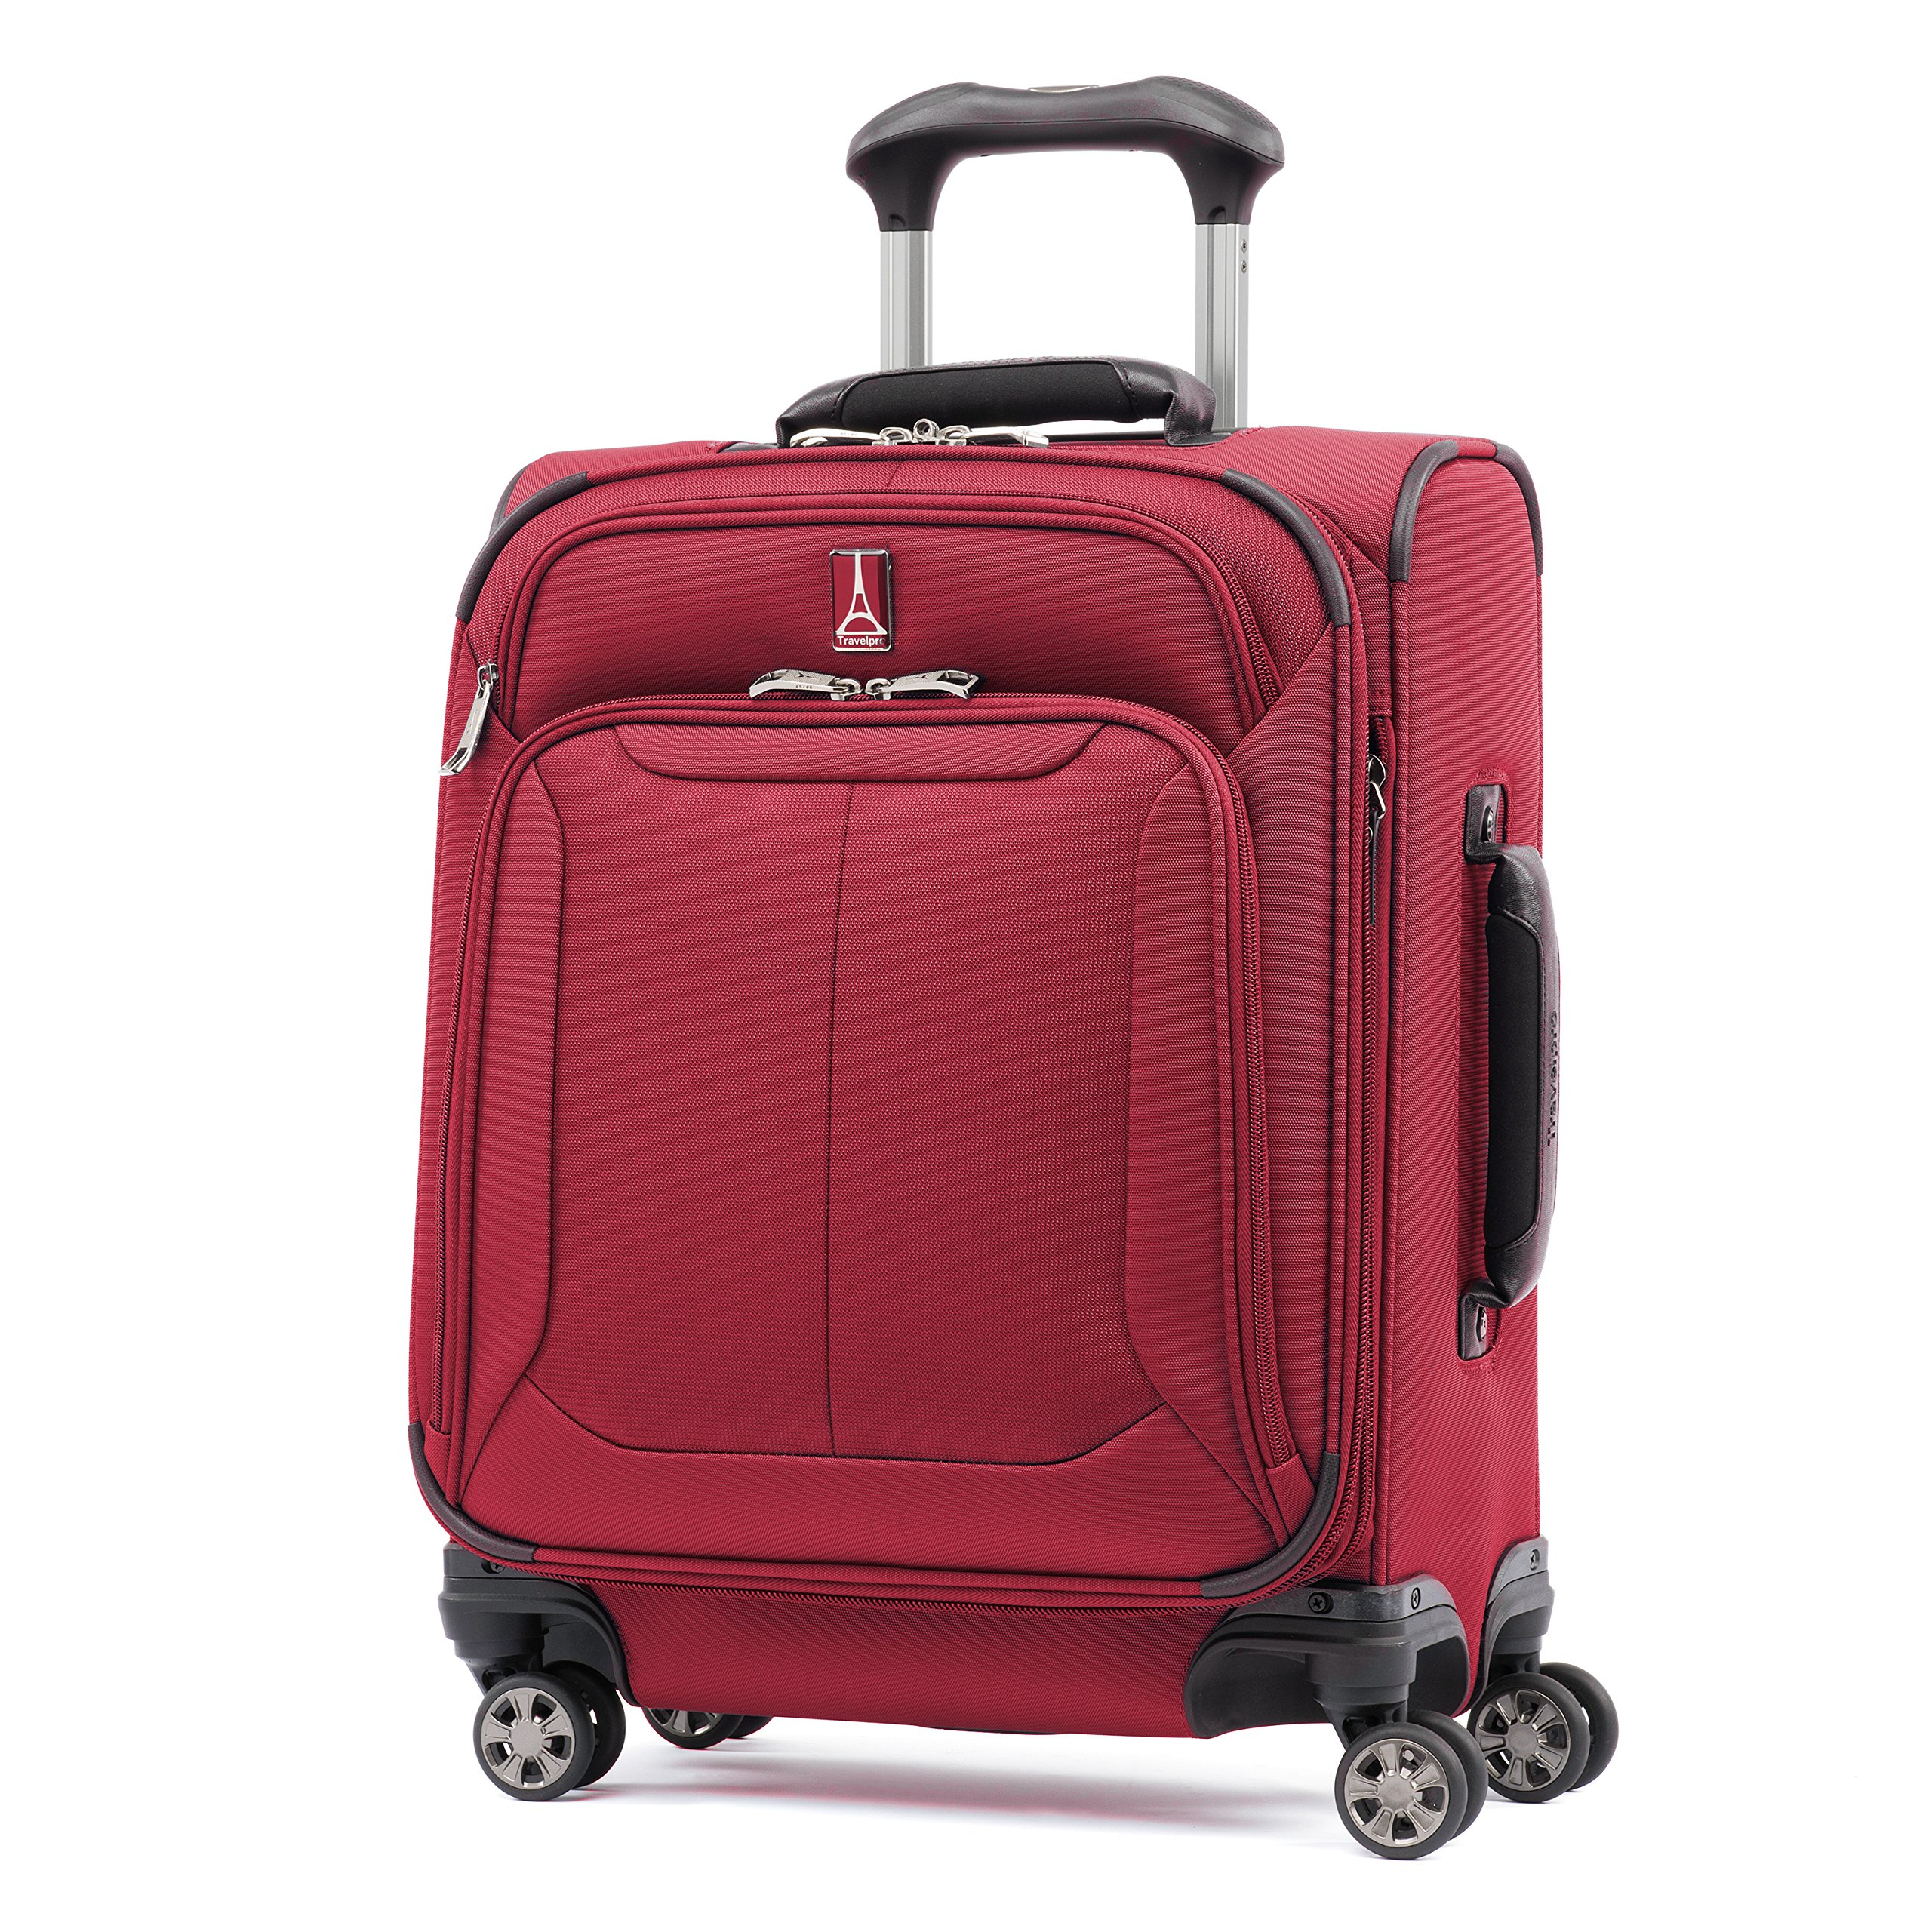 Travelpro Skypro Lite 20'' International Expandable 8-Wheel Carry-On Luggage Spinner (Merlot)